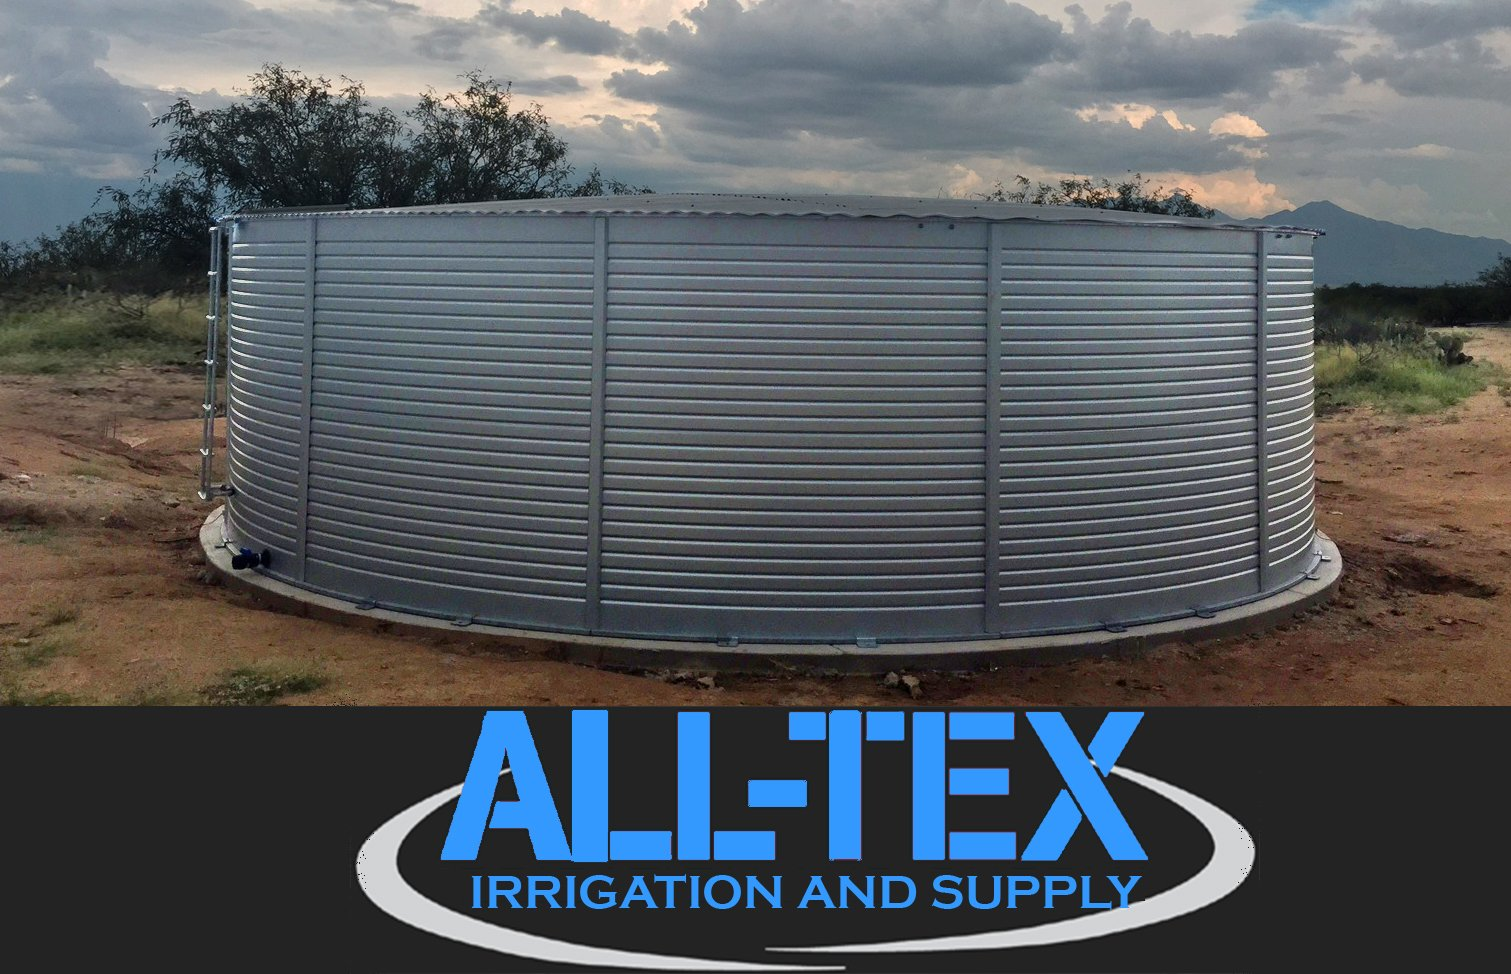 All Tex Irrigation & Supply water storage tanks in Texas